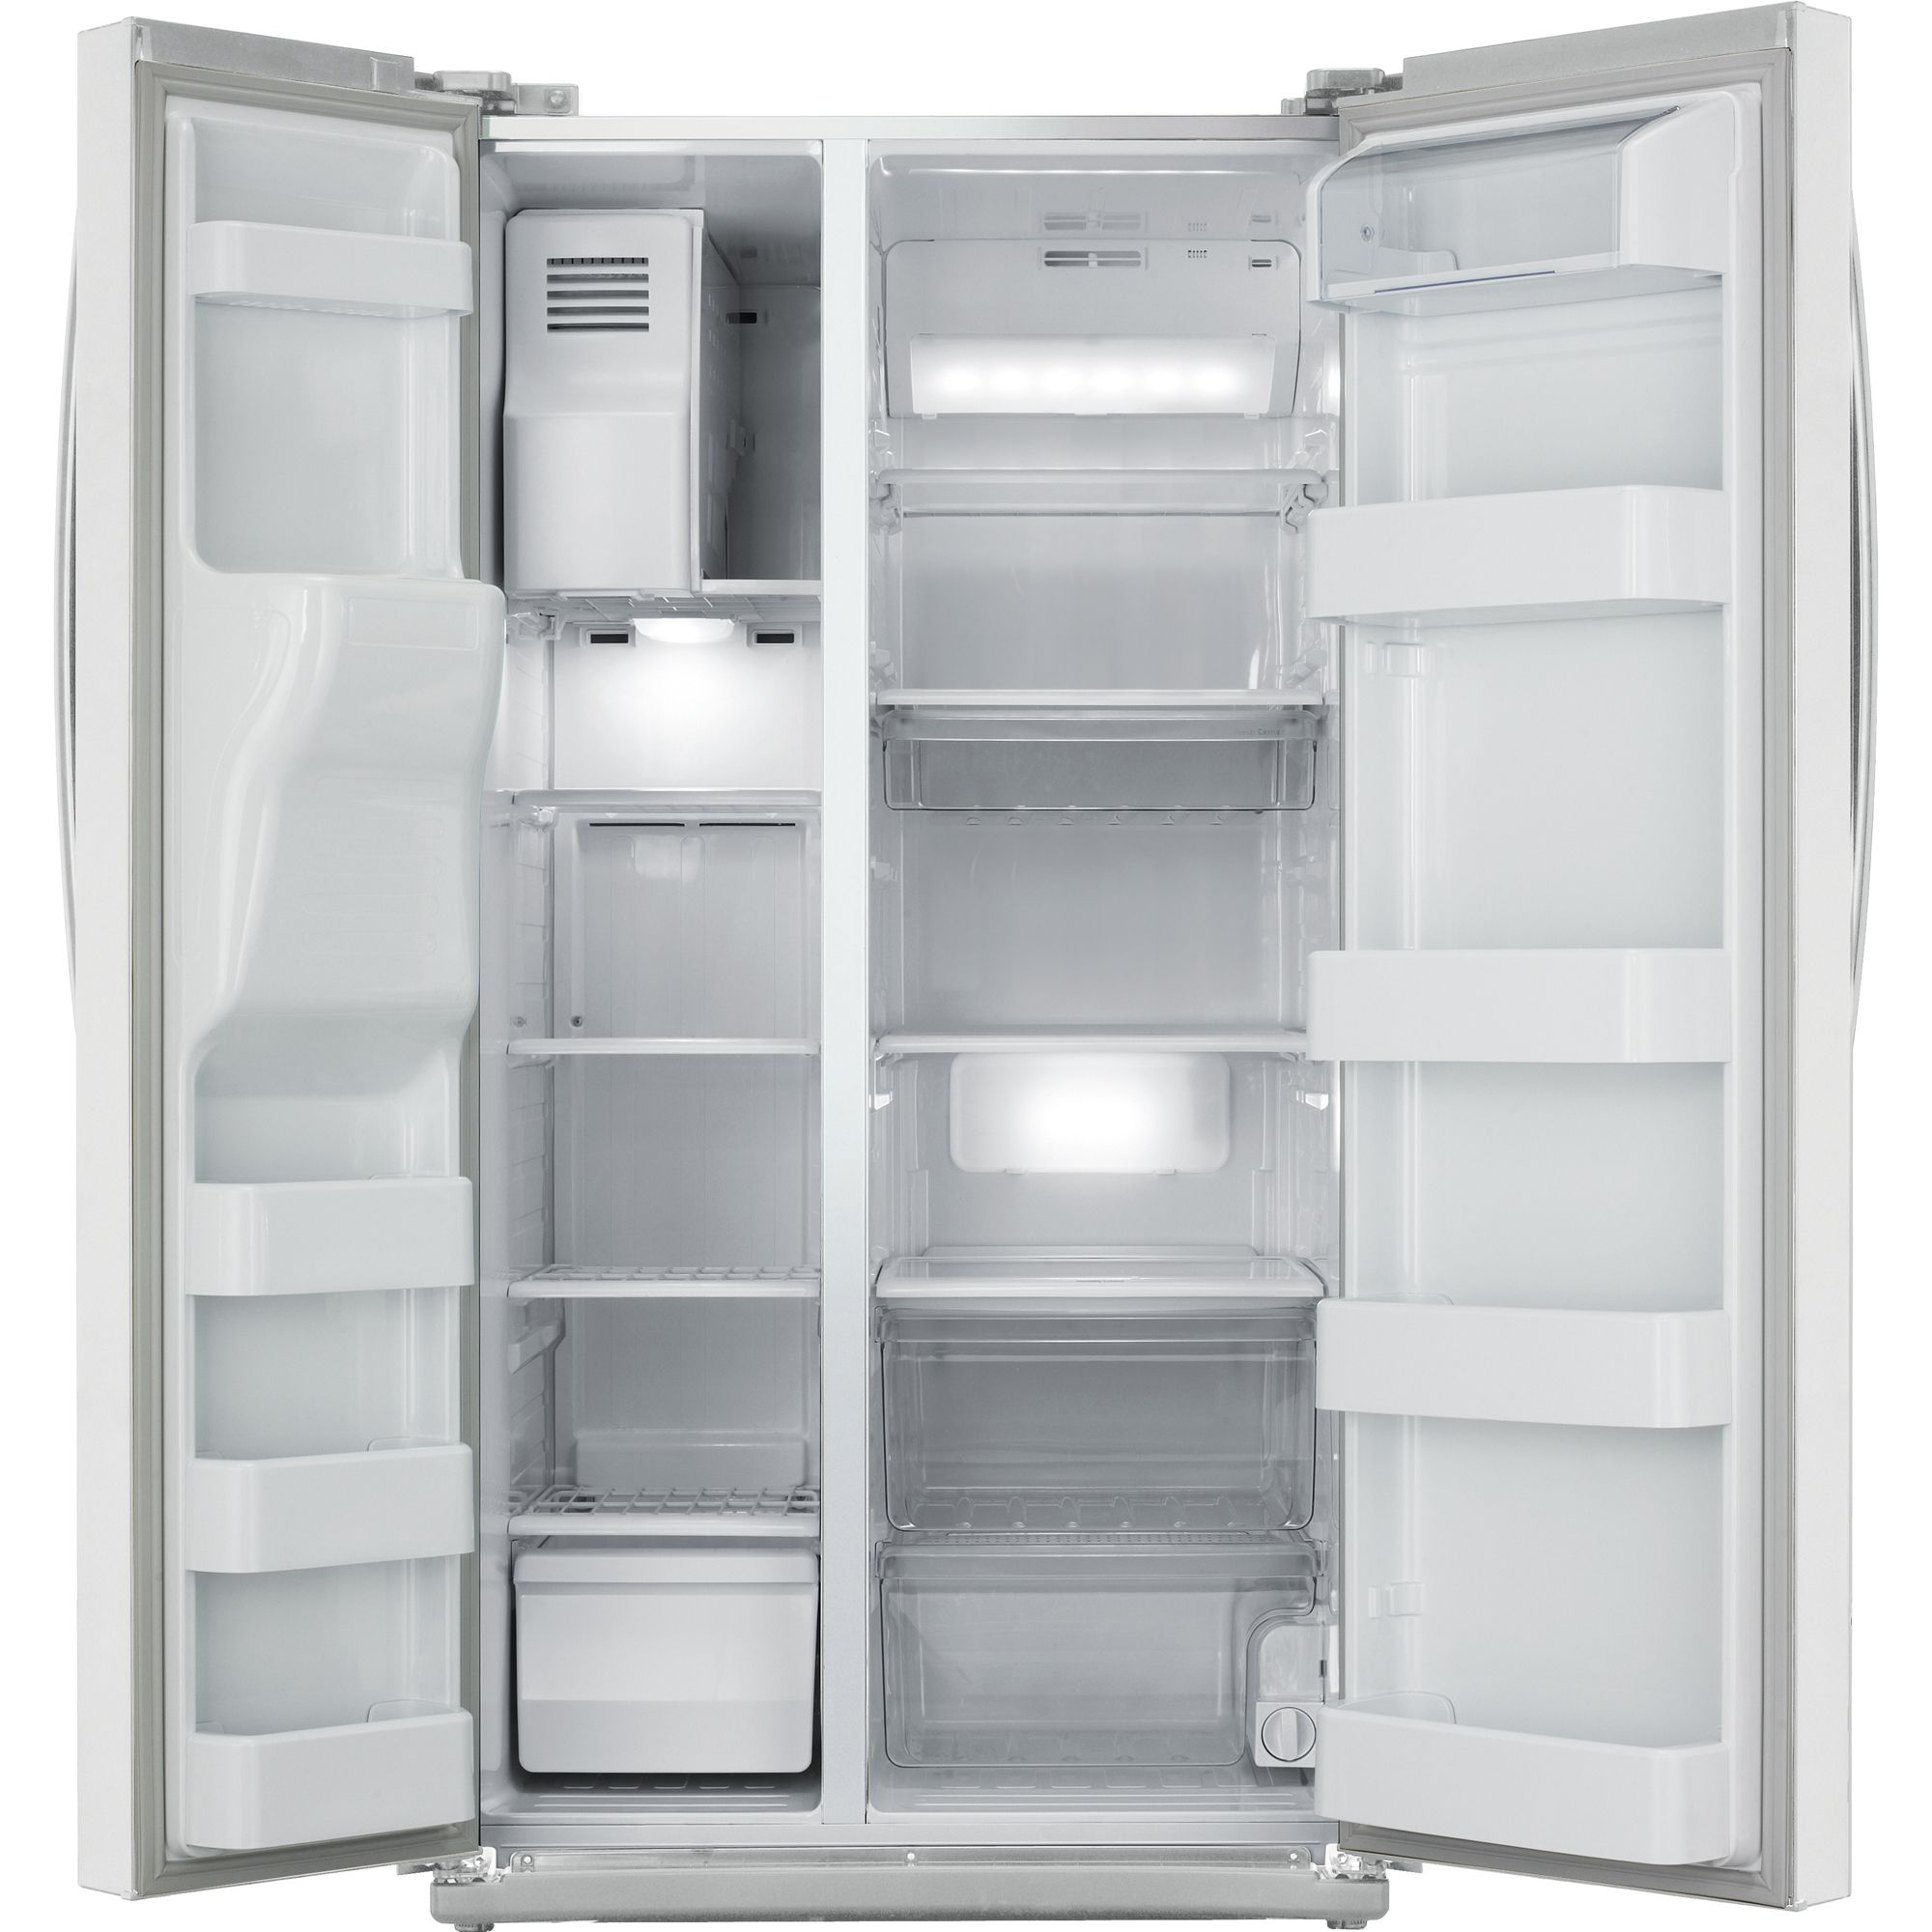 Samsung 26.0 cu. ft. Side-By-Side Refrigerator - White